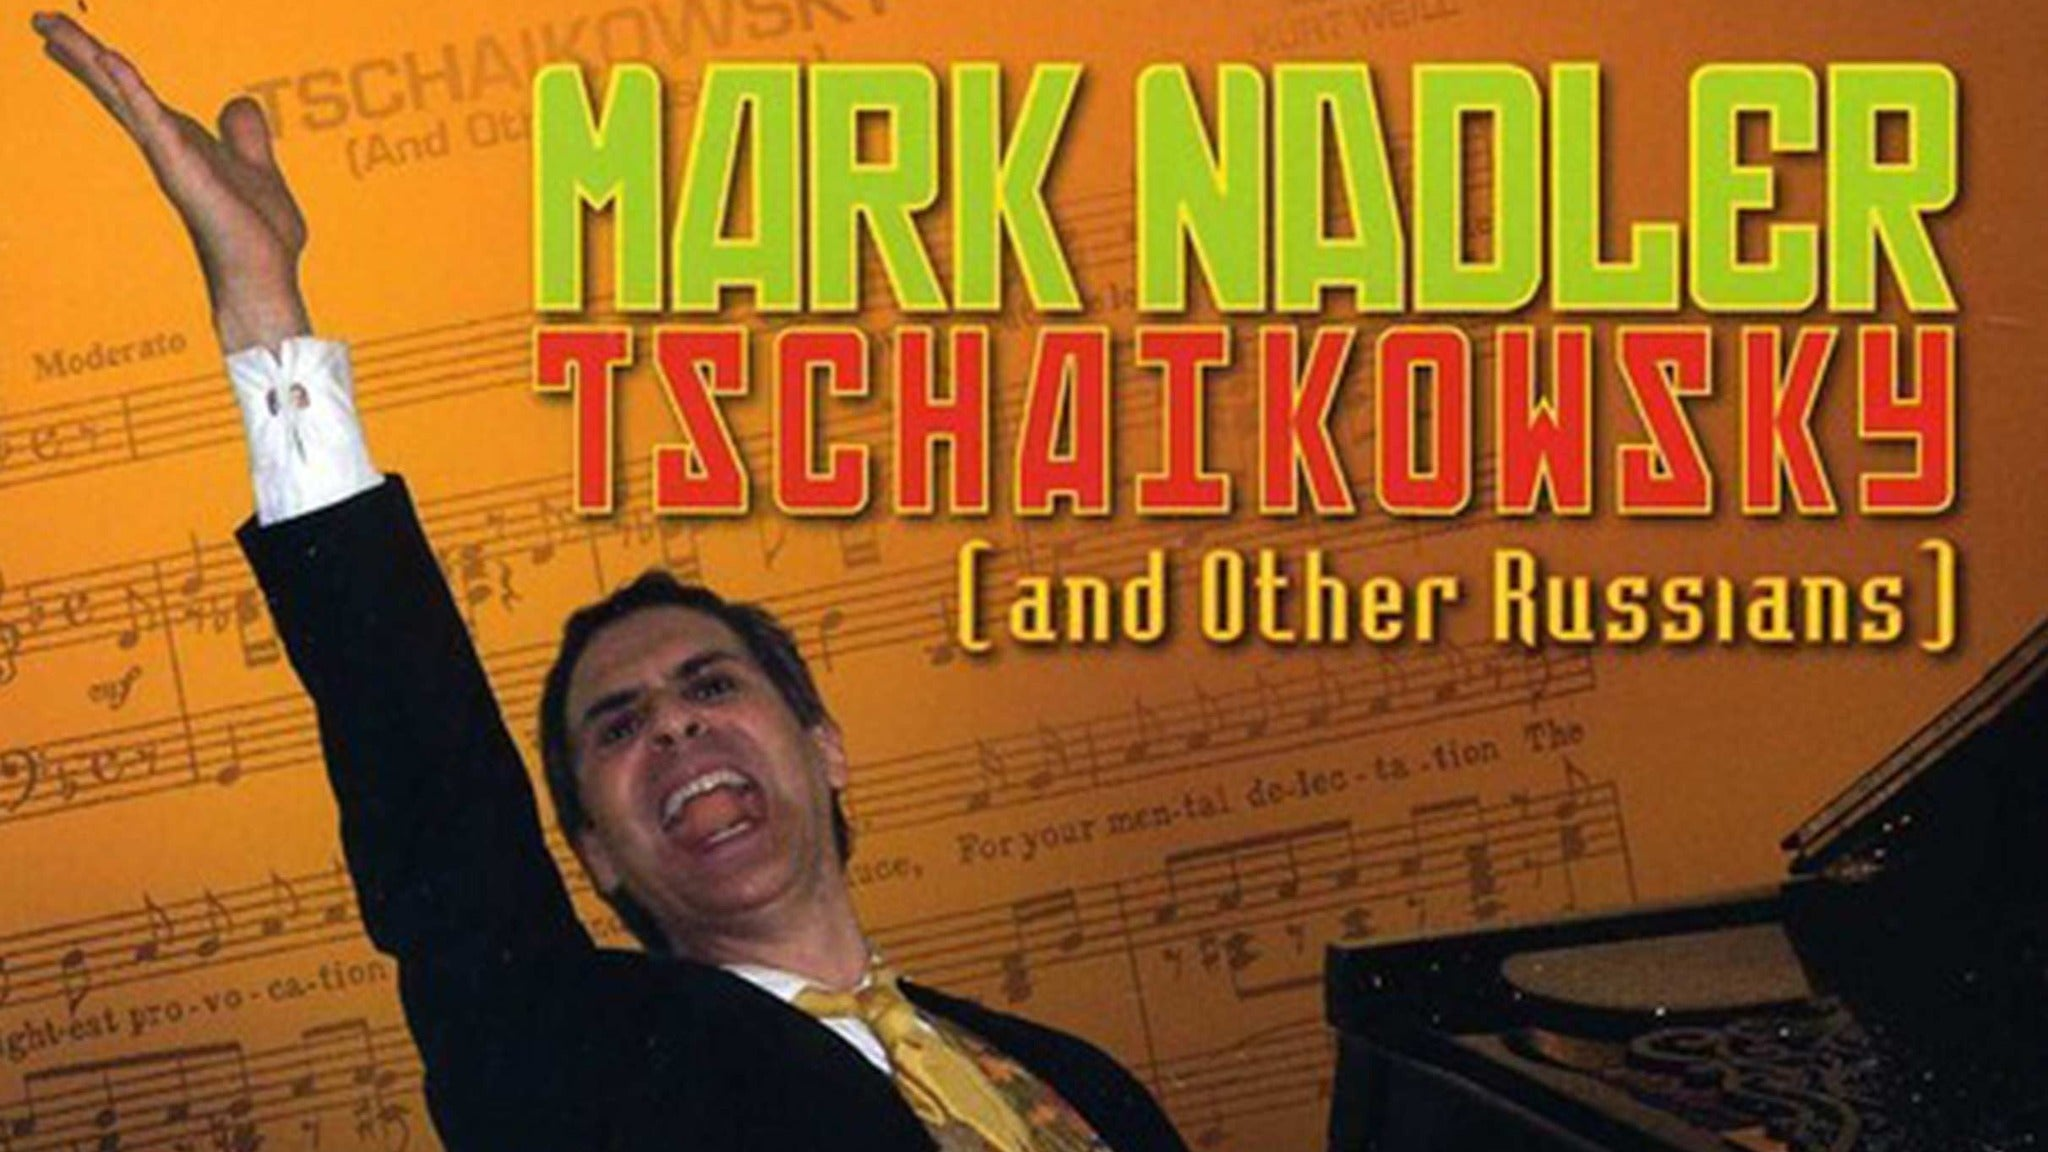 Mark Nadler: Tschaikowsky (and Other Russians)